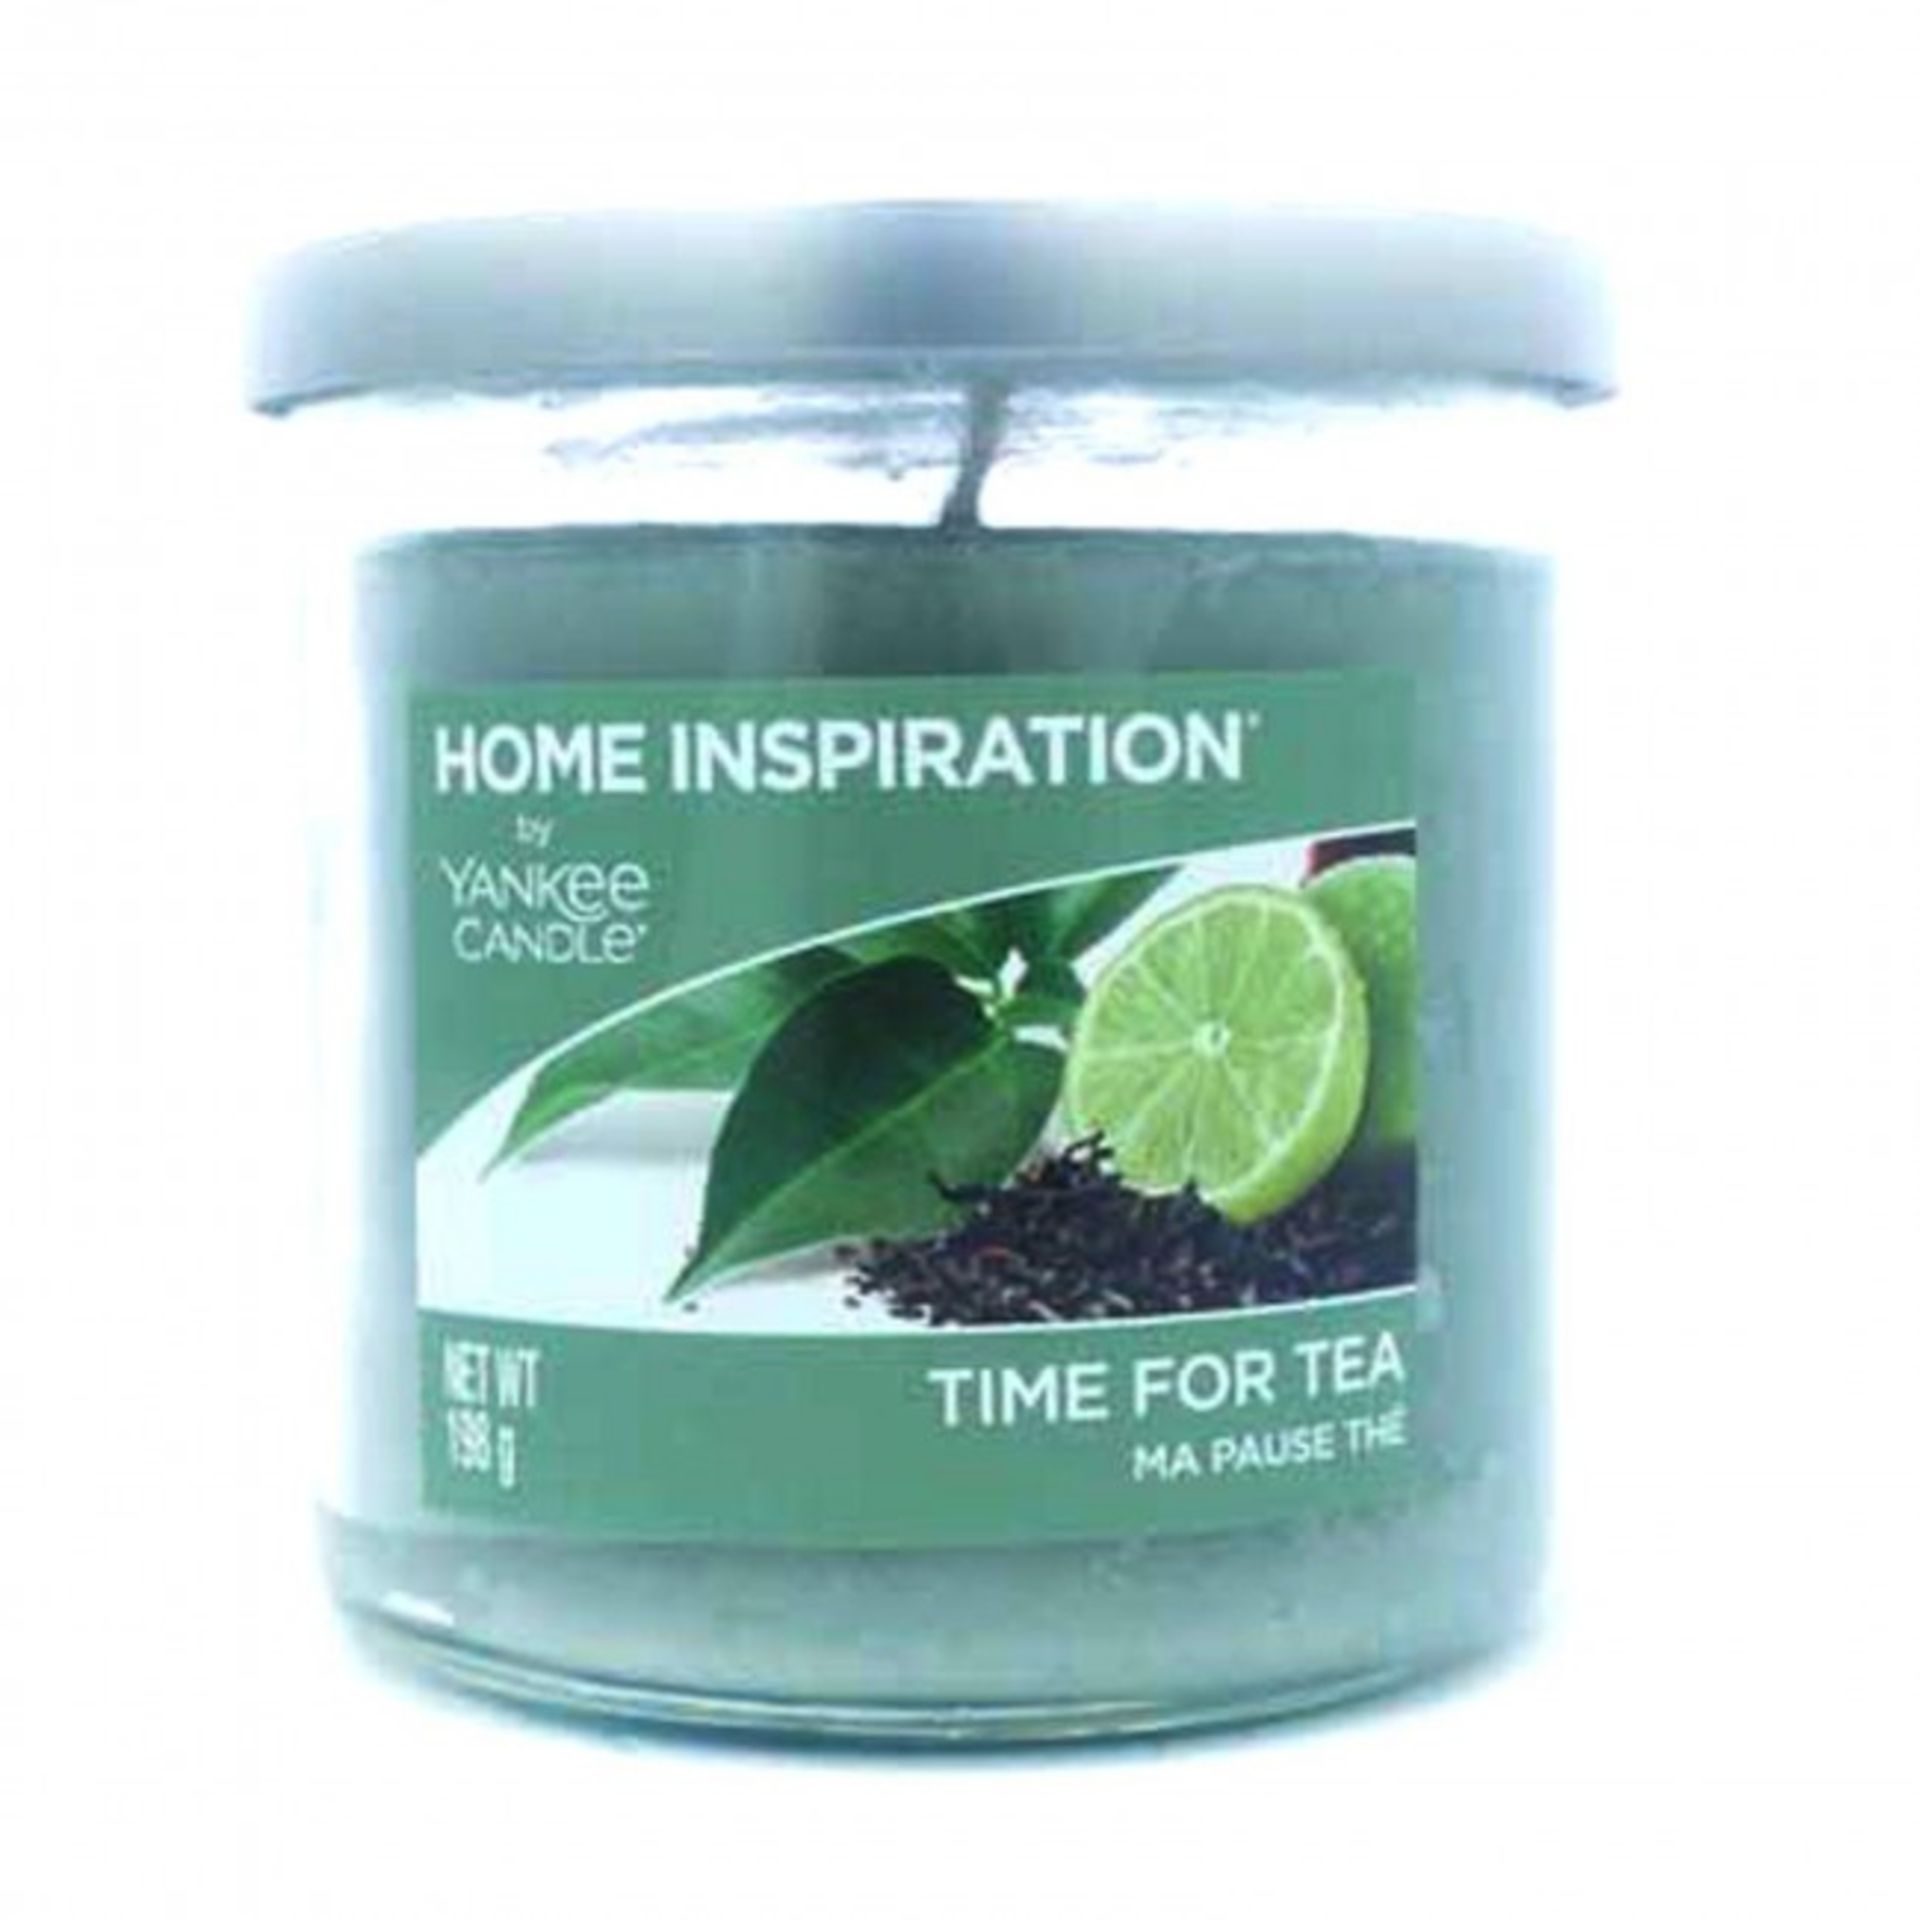 Lot 50087 - V Brand New Home Inspiration by Yankee Candle Time for Tea 198g Tumbler Candle - ISP £7.99 Ebay (